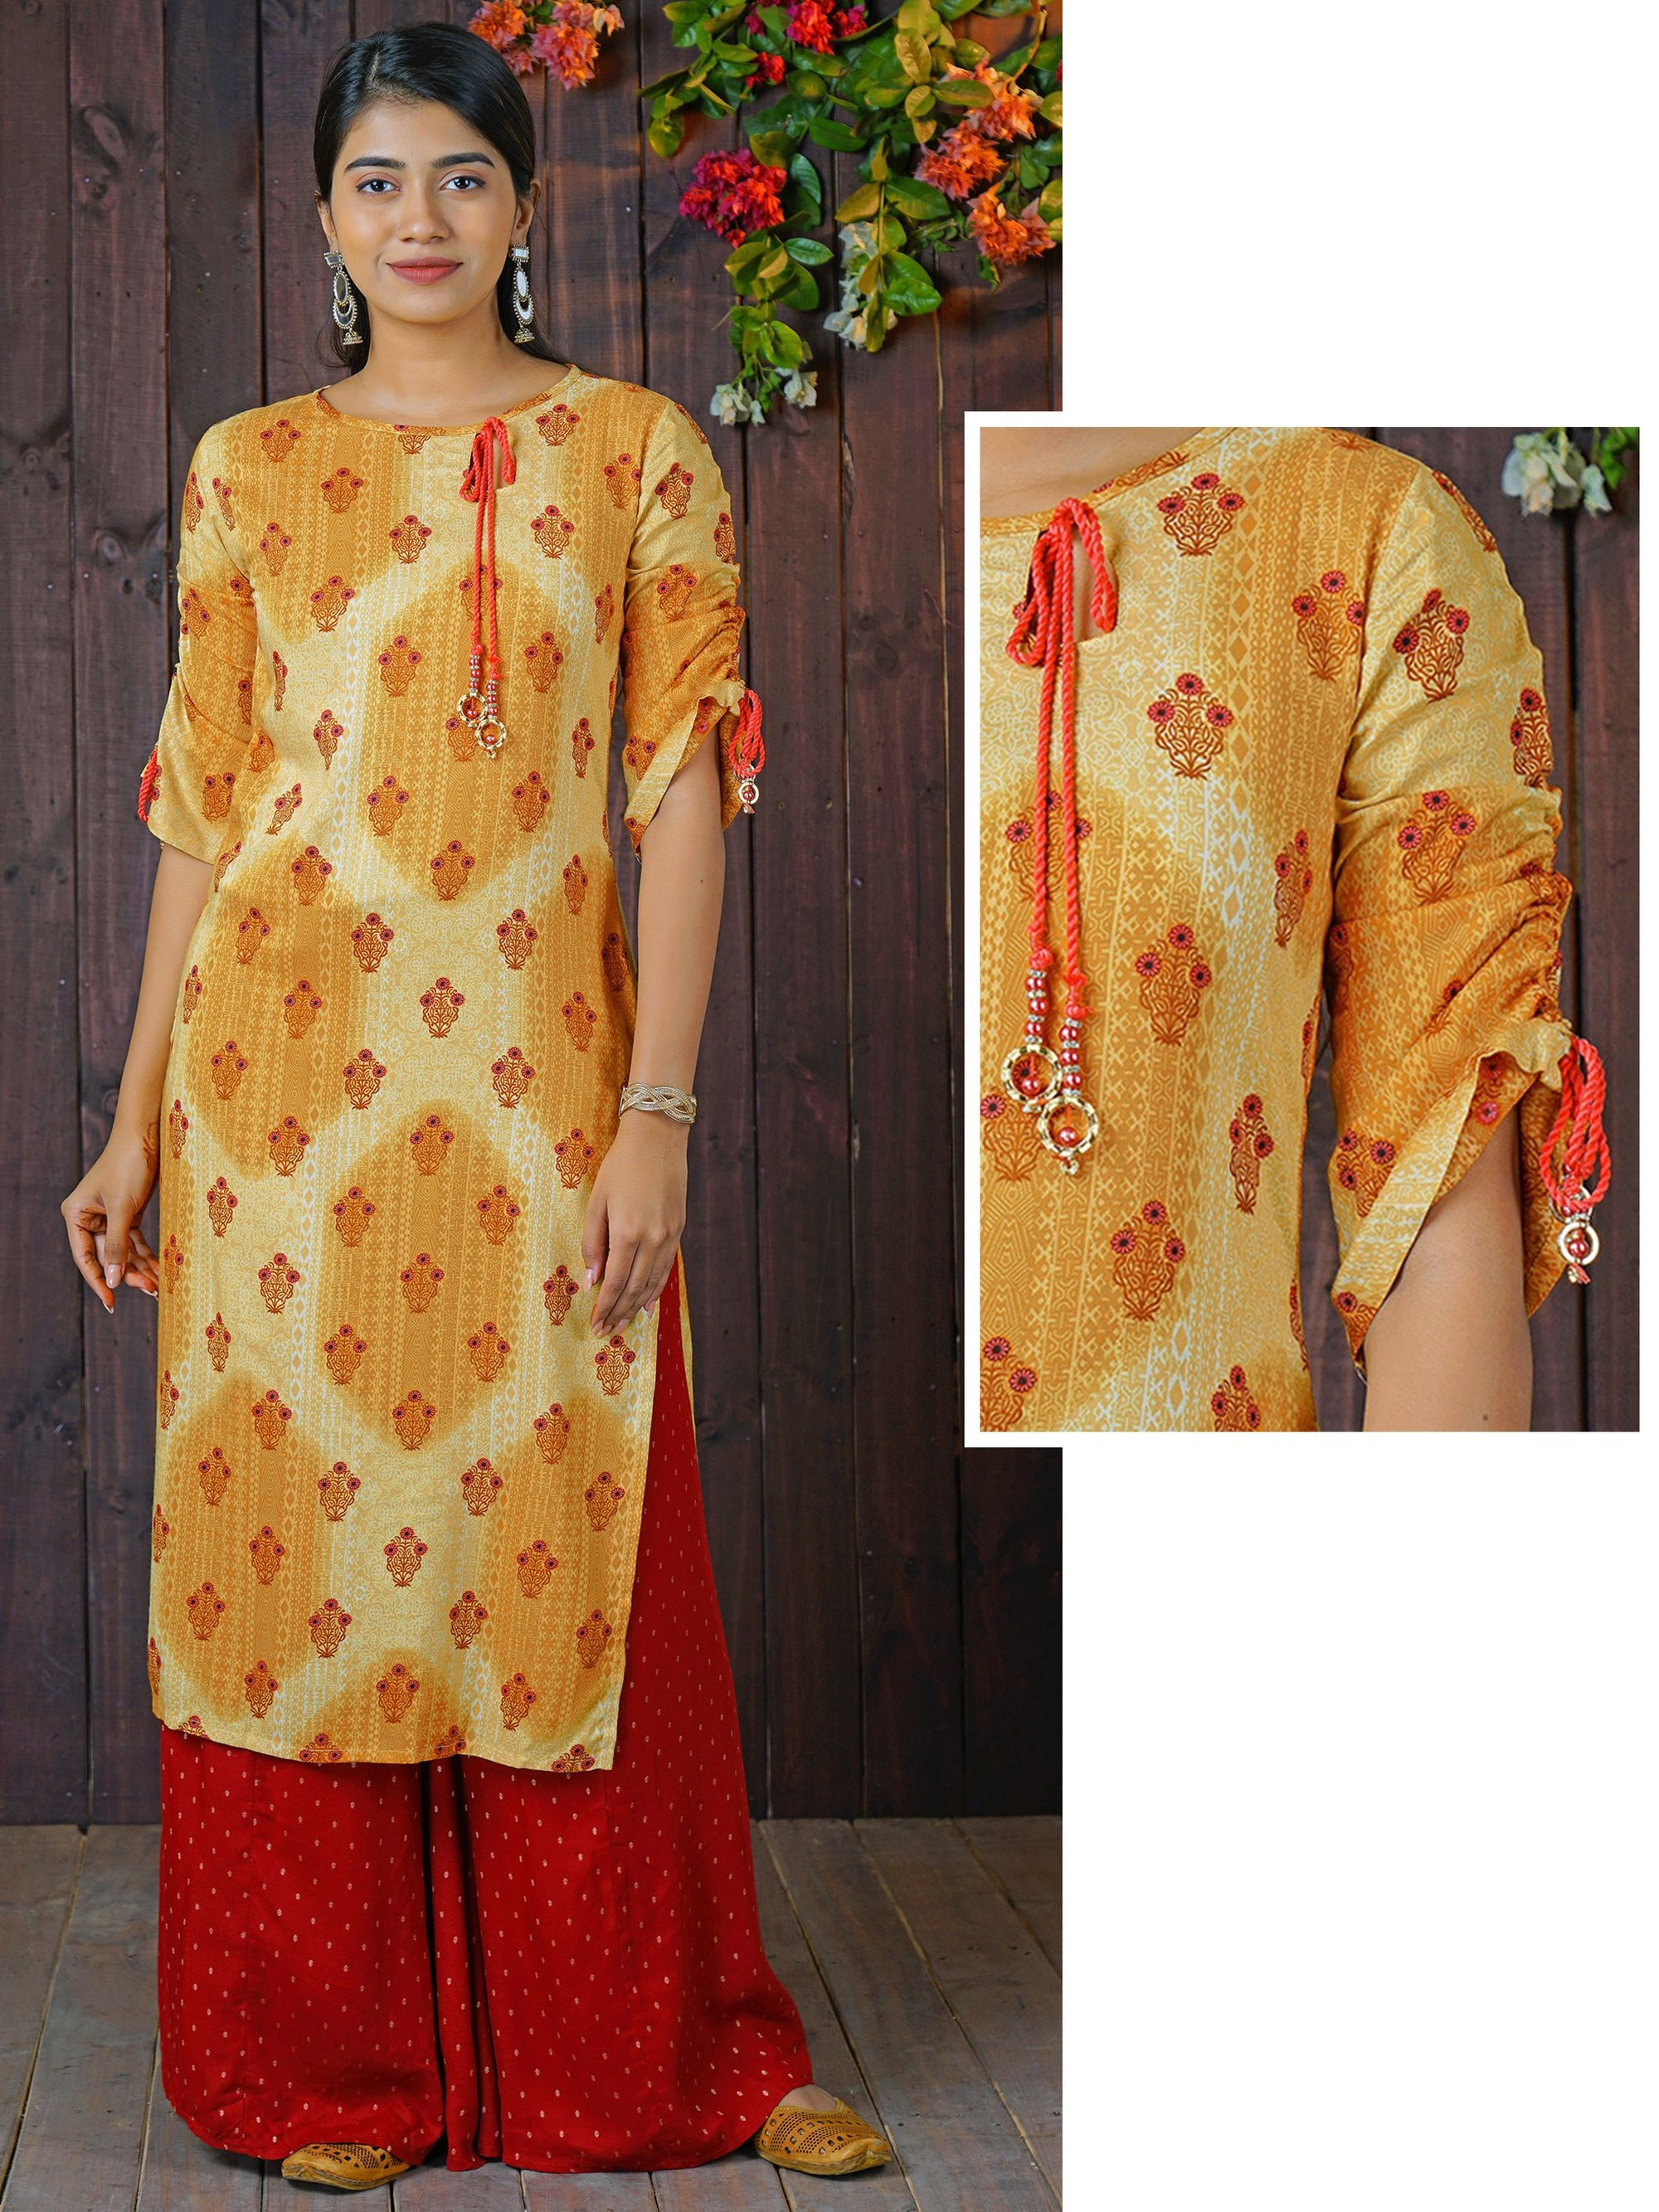 Abstract Printed Key Hole Neck Dori Tie-Up Rayon Kurti – Mustard Yellow